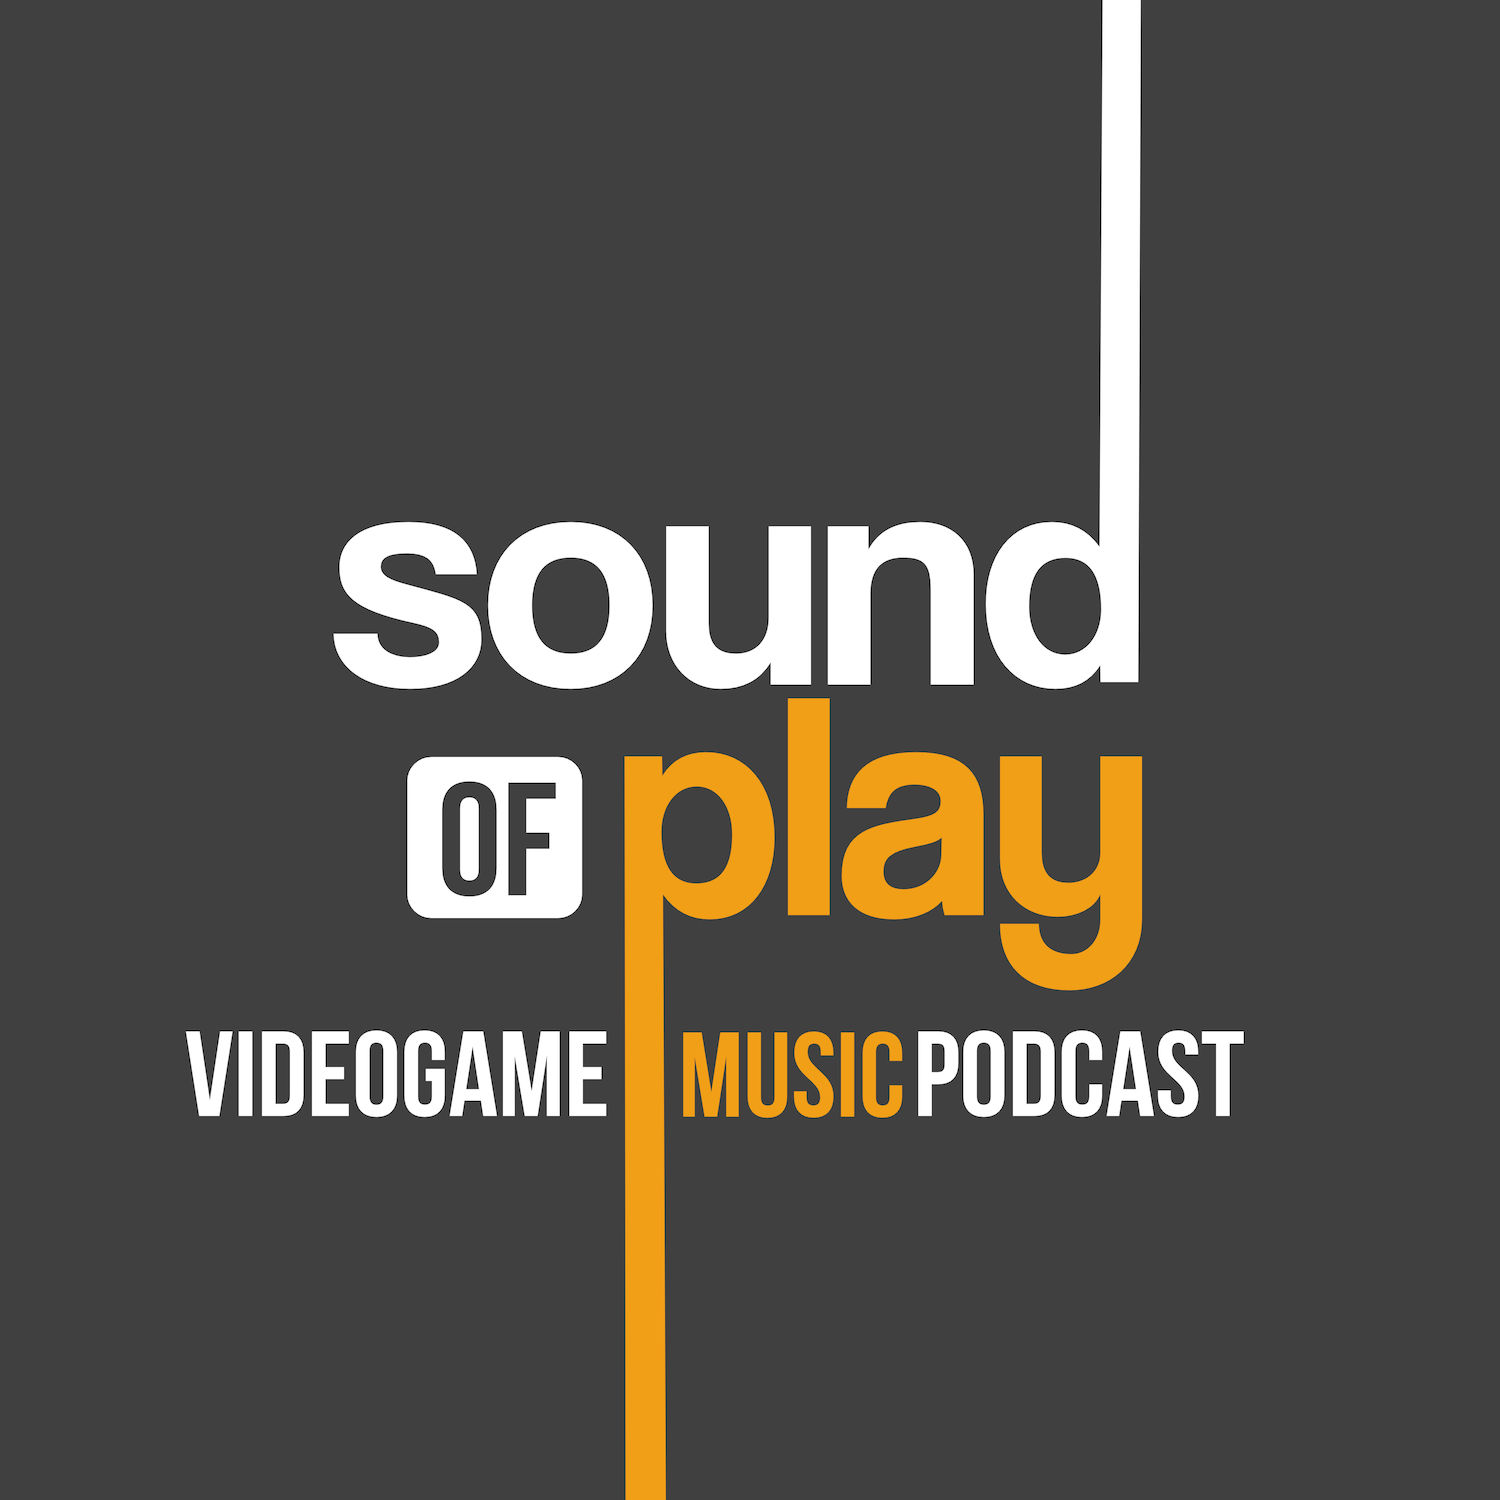 The video game music podcast. A diverse sample of our favorite pieces from the many air-punching, spine-tingling, tear-jerking and grin-inducing video game soundtracks we've heard over the years.